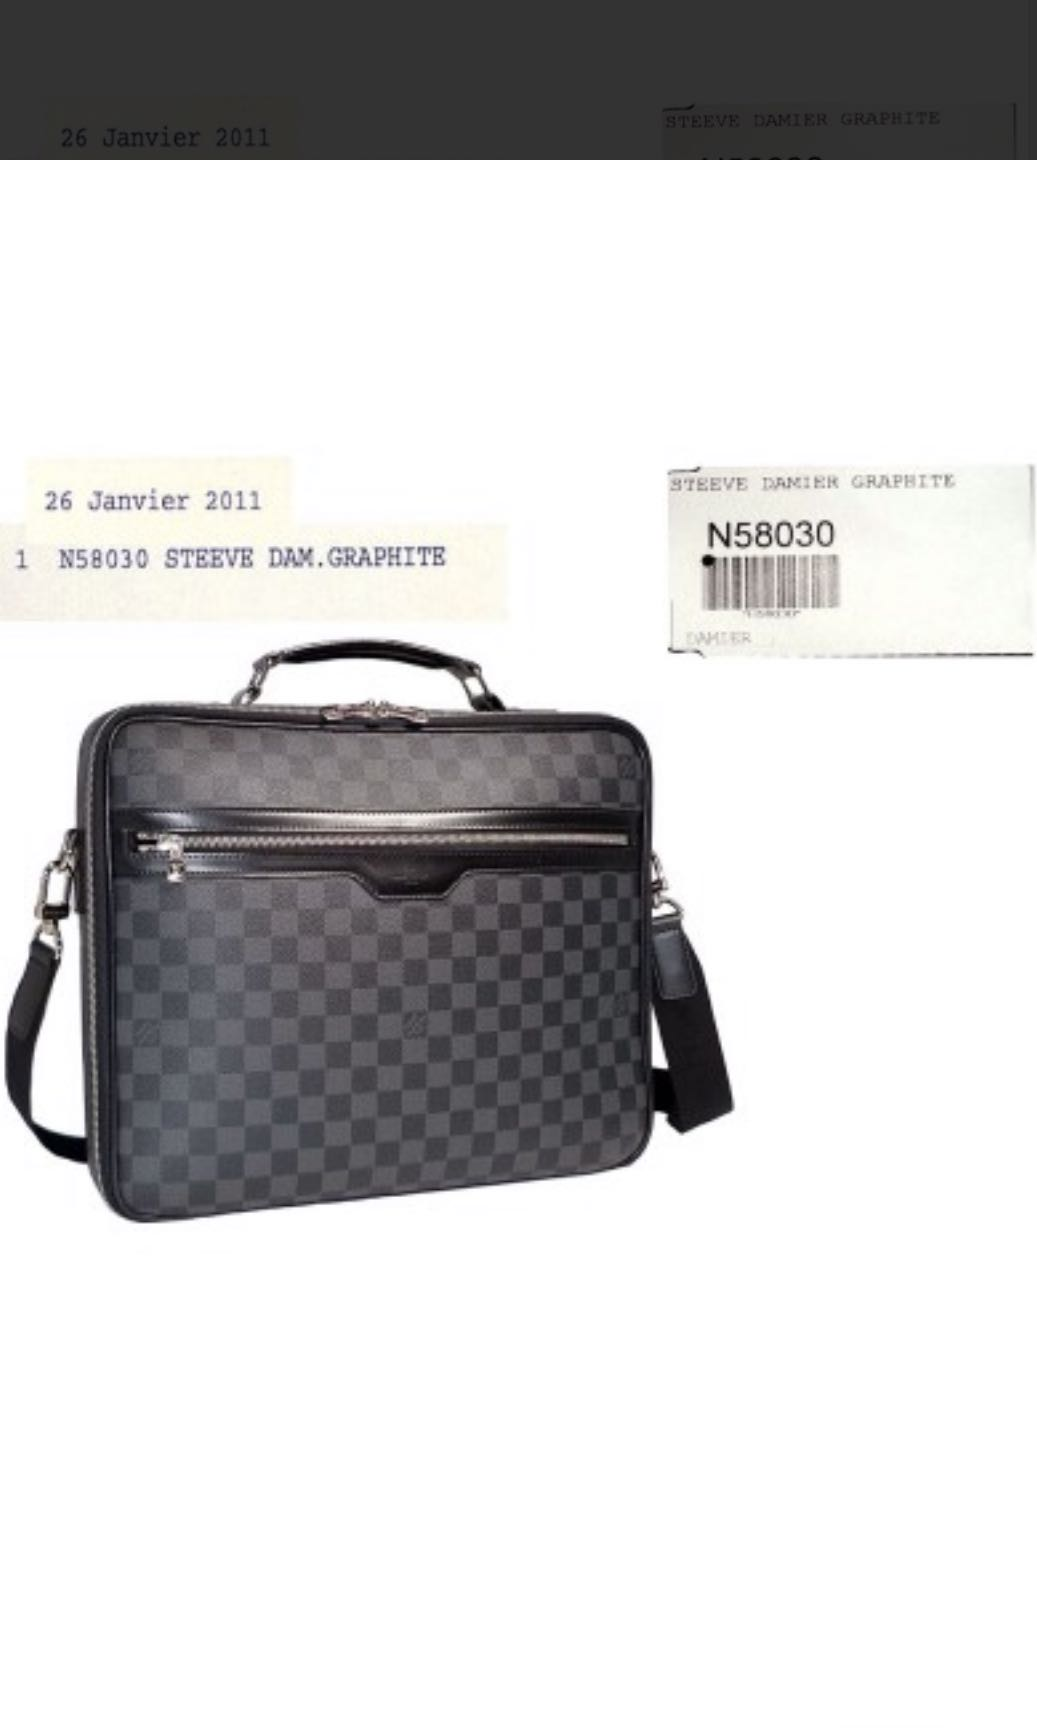 5916f55c23dc Louis vuitton steeve damier